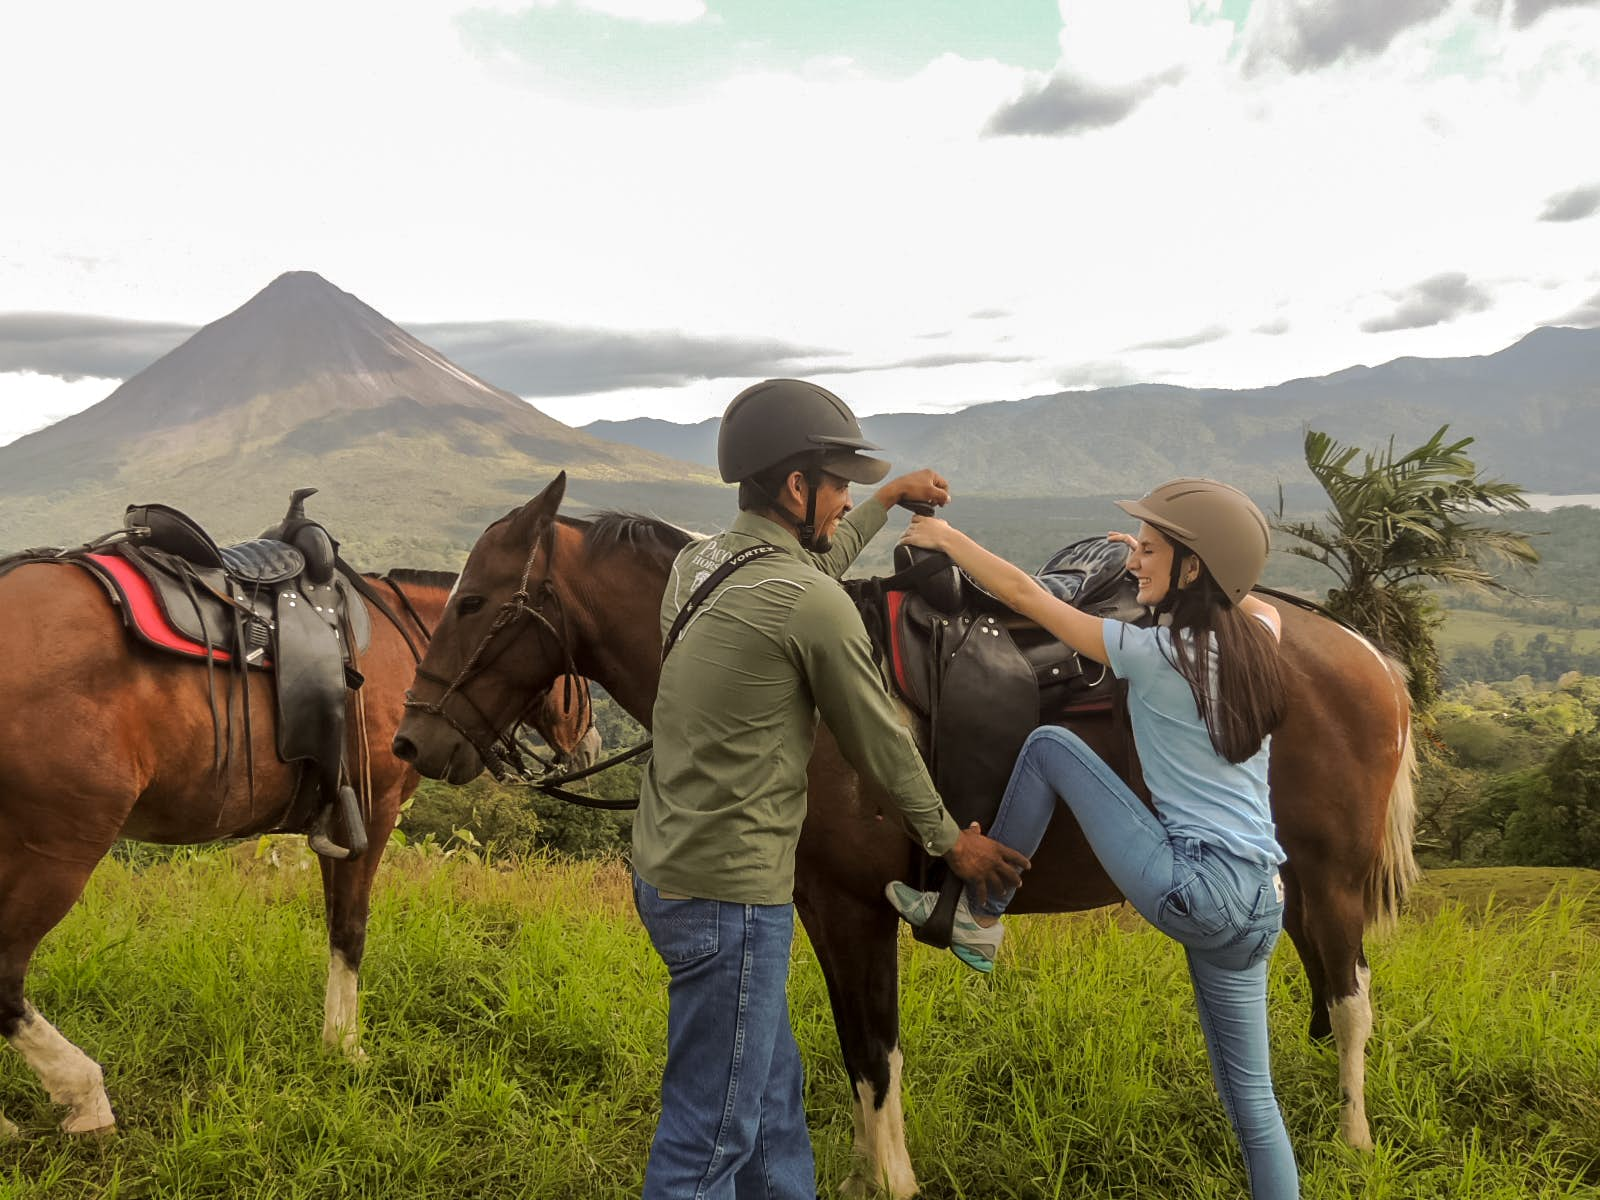 Expert Guide gives horseback riding instructions to visitor.